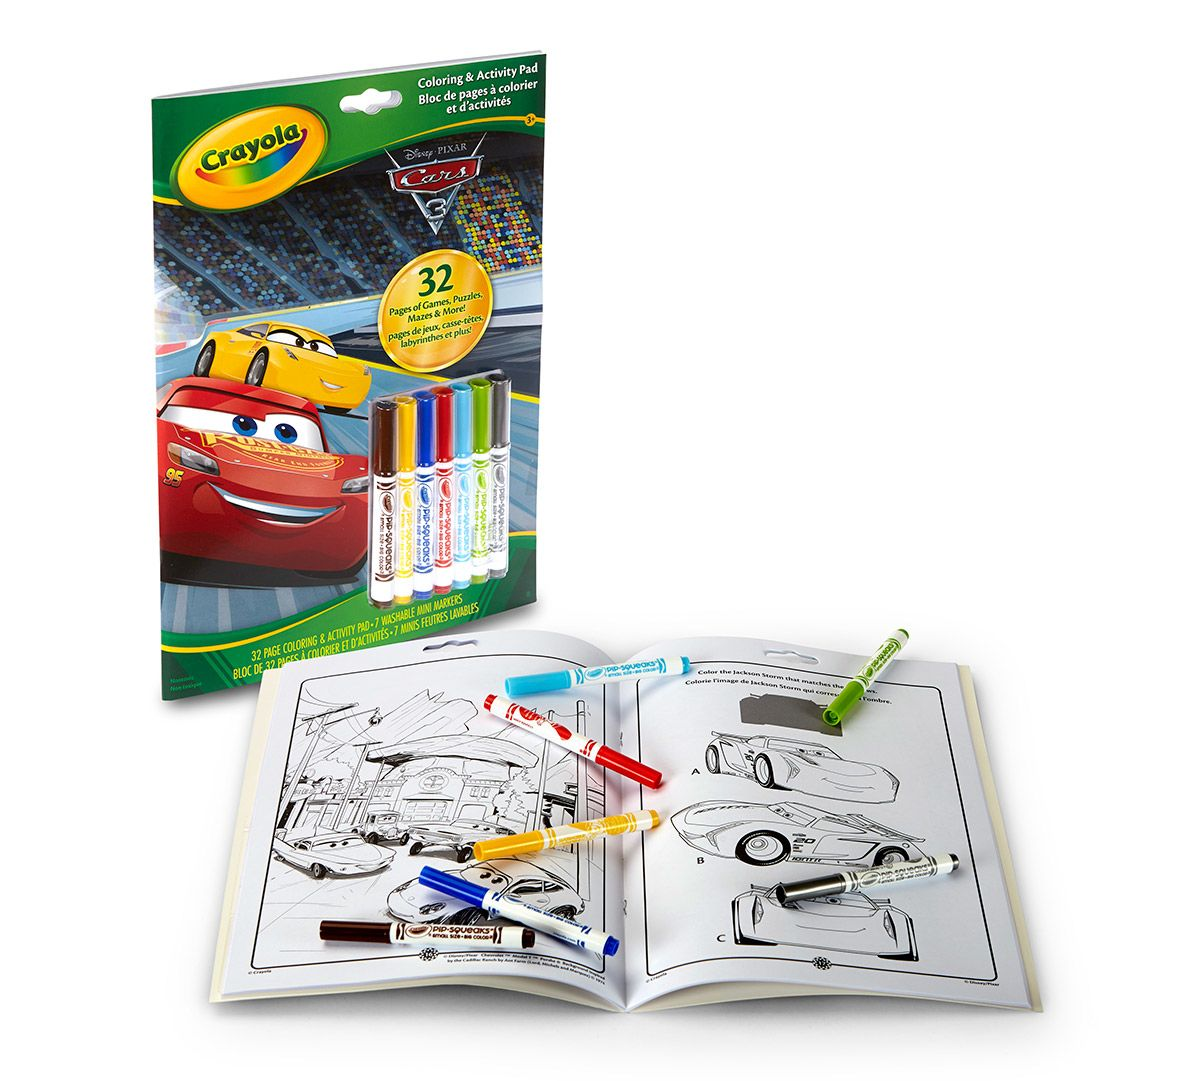 Crayola Coloring & Activity Pad w/Markers Cars 3 | Property Room